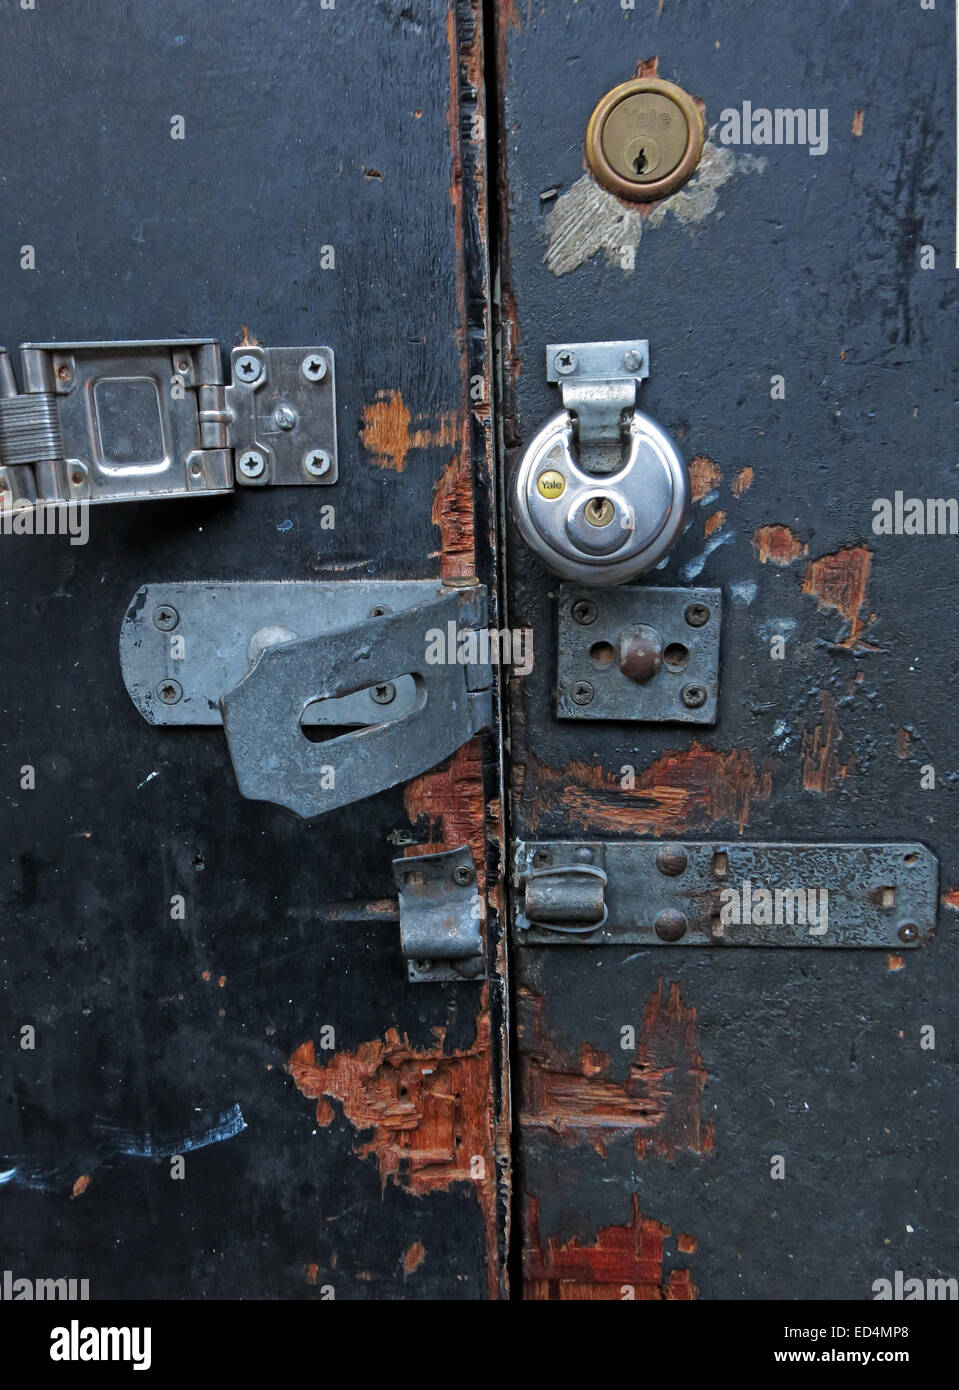 Ultra secure door with many locks, yale, padlock and bolts - Stock Image